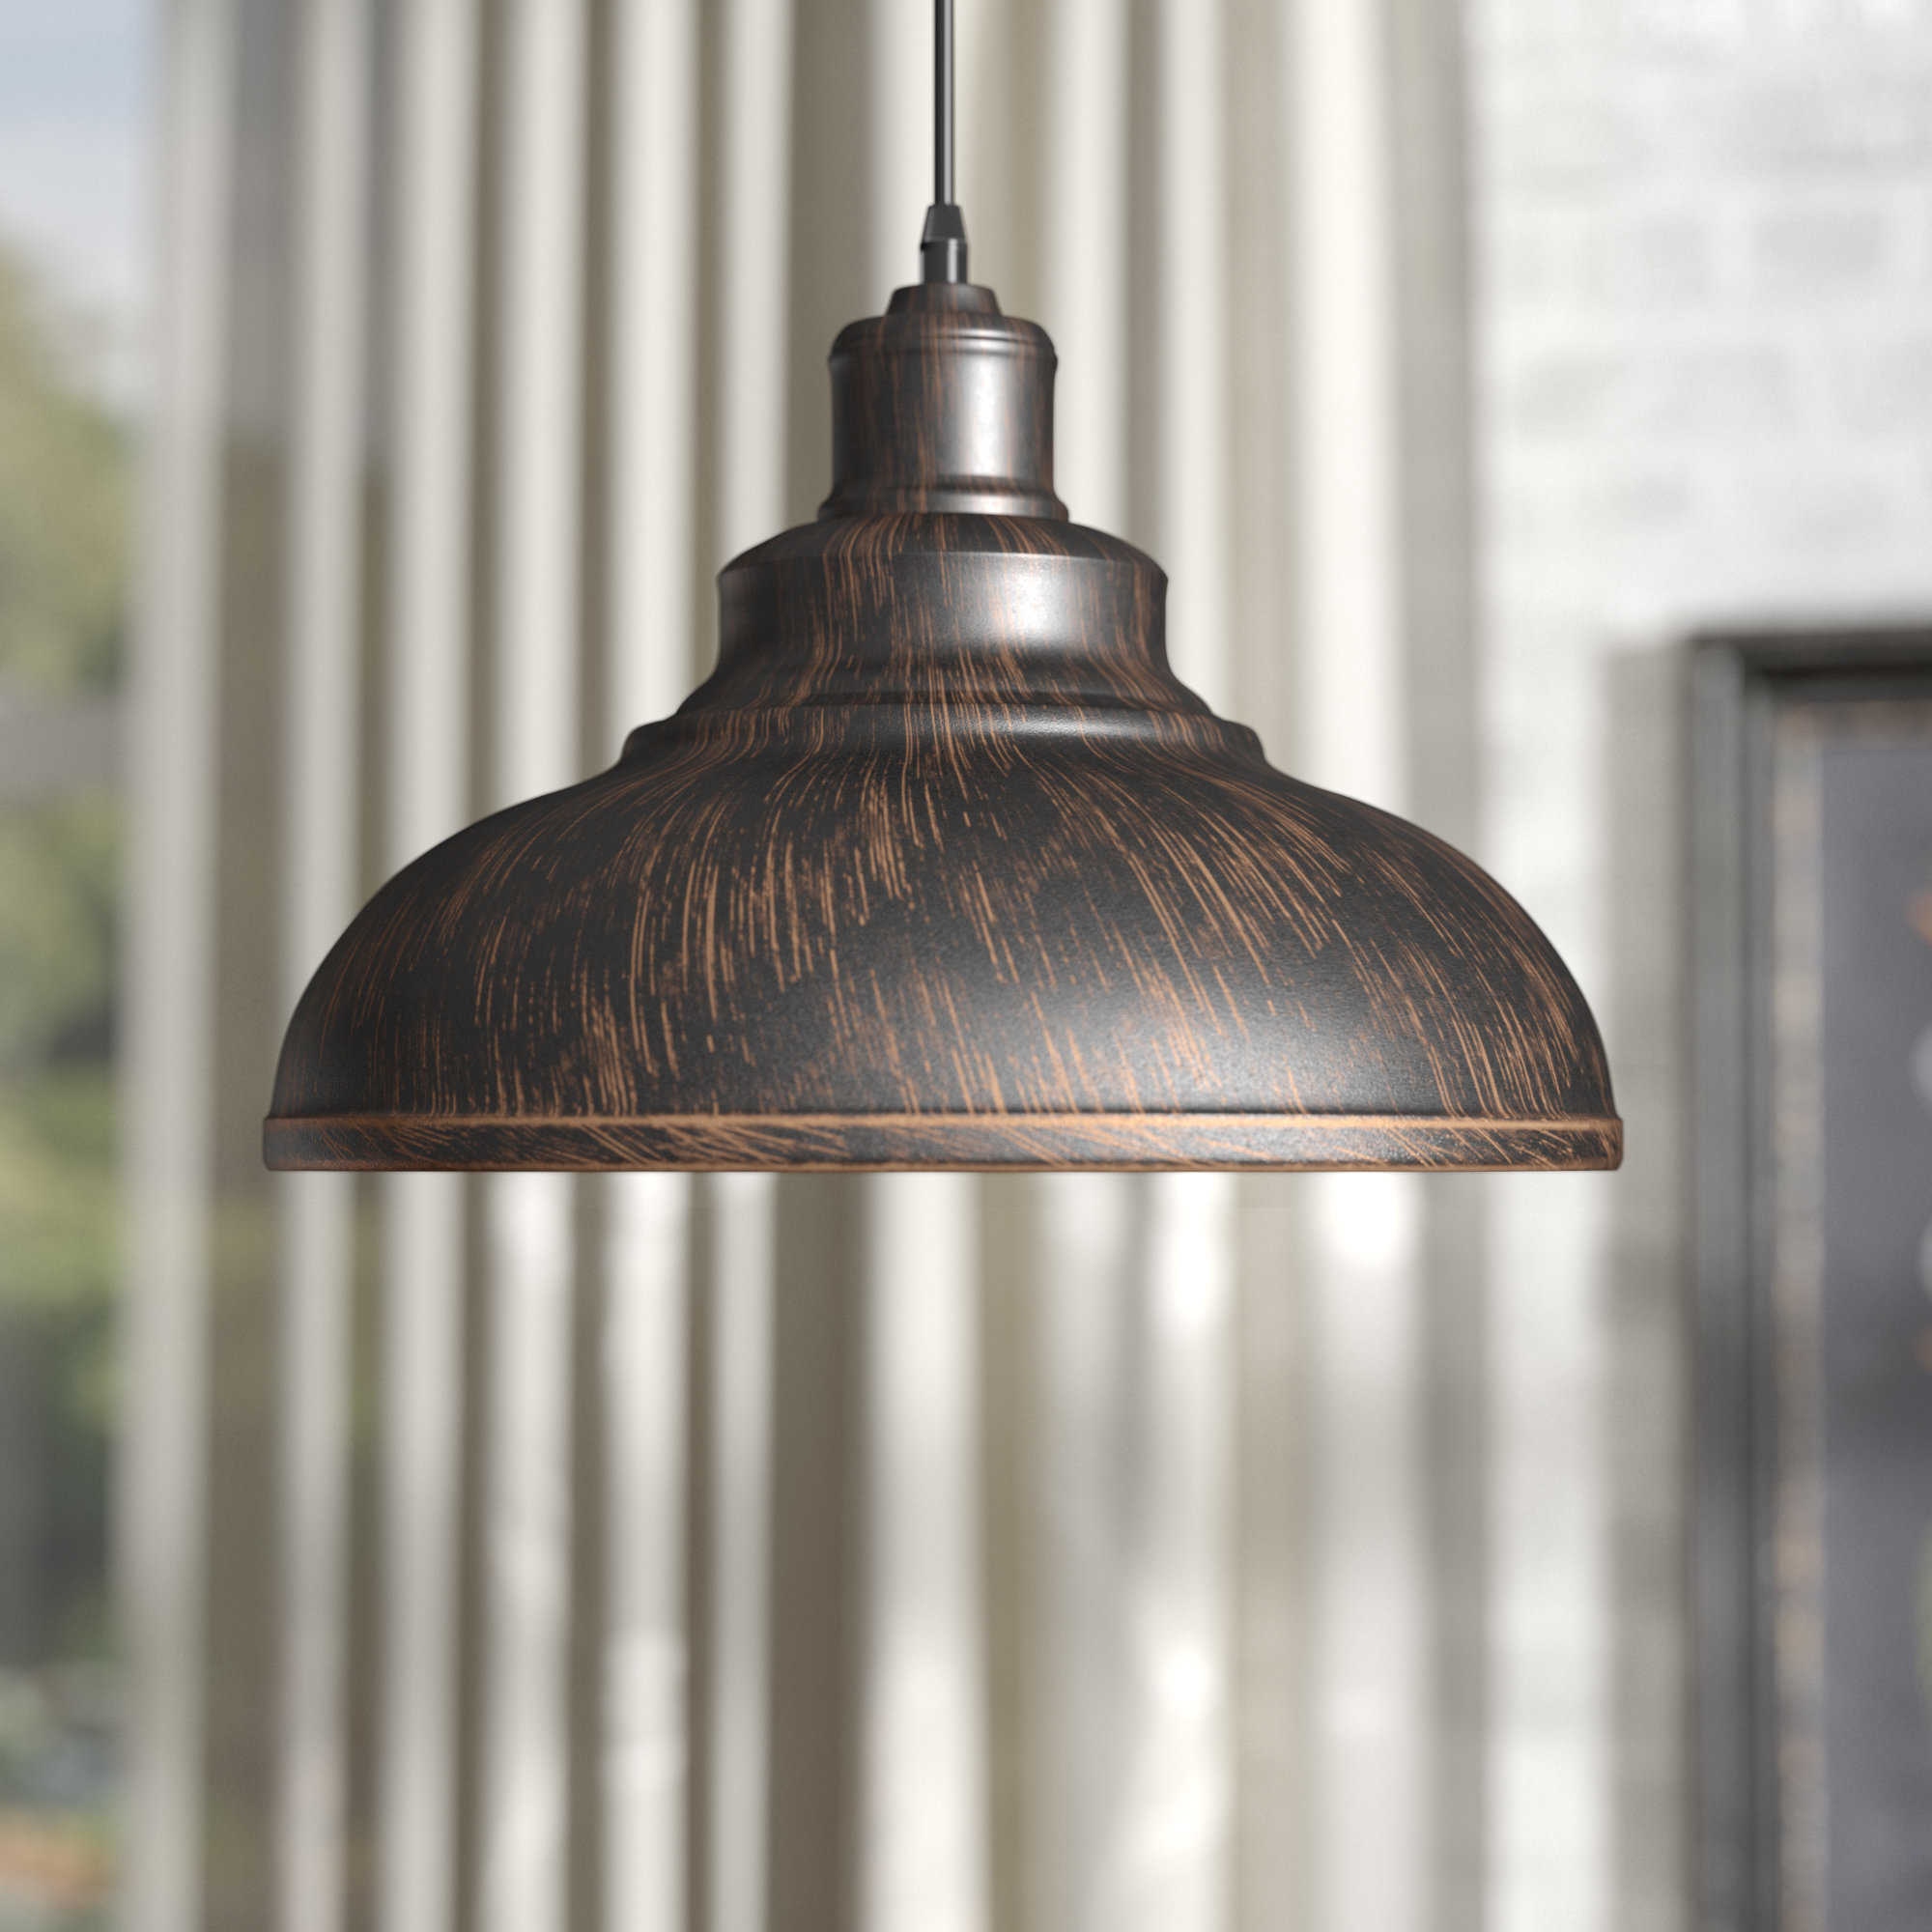 Adriana Black 1 Light Single Dome Pendants Within Most Recently Released Laurel Foundry Modern Farmhouse Estella 1 Light Dome Pendant (View 8 of 25)